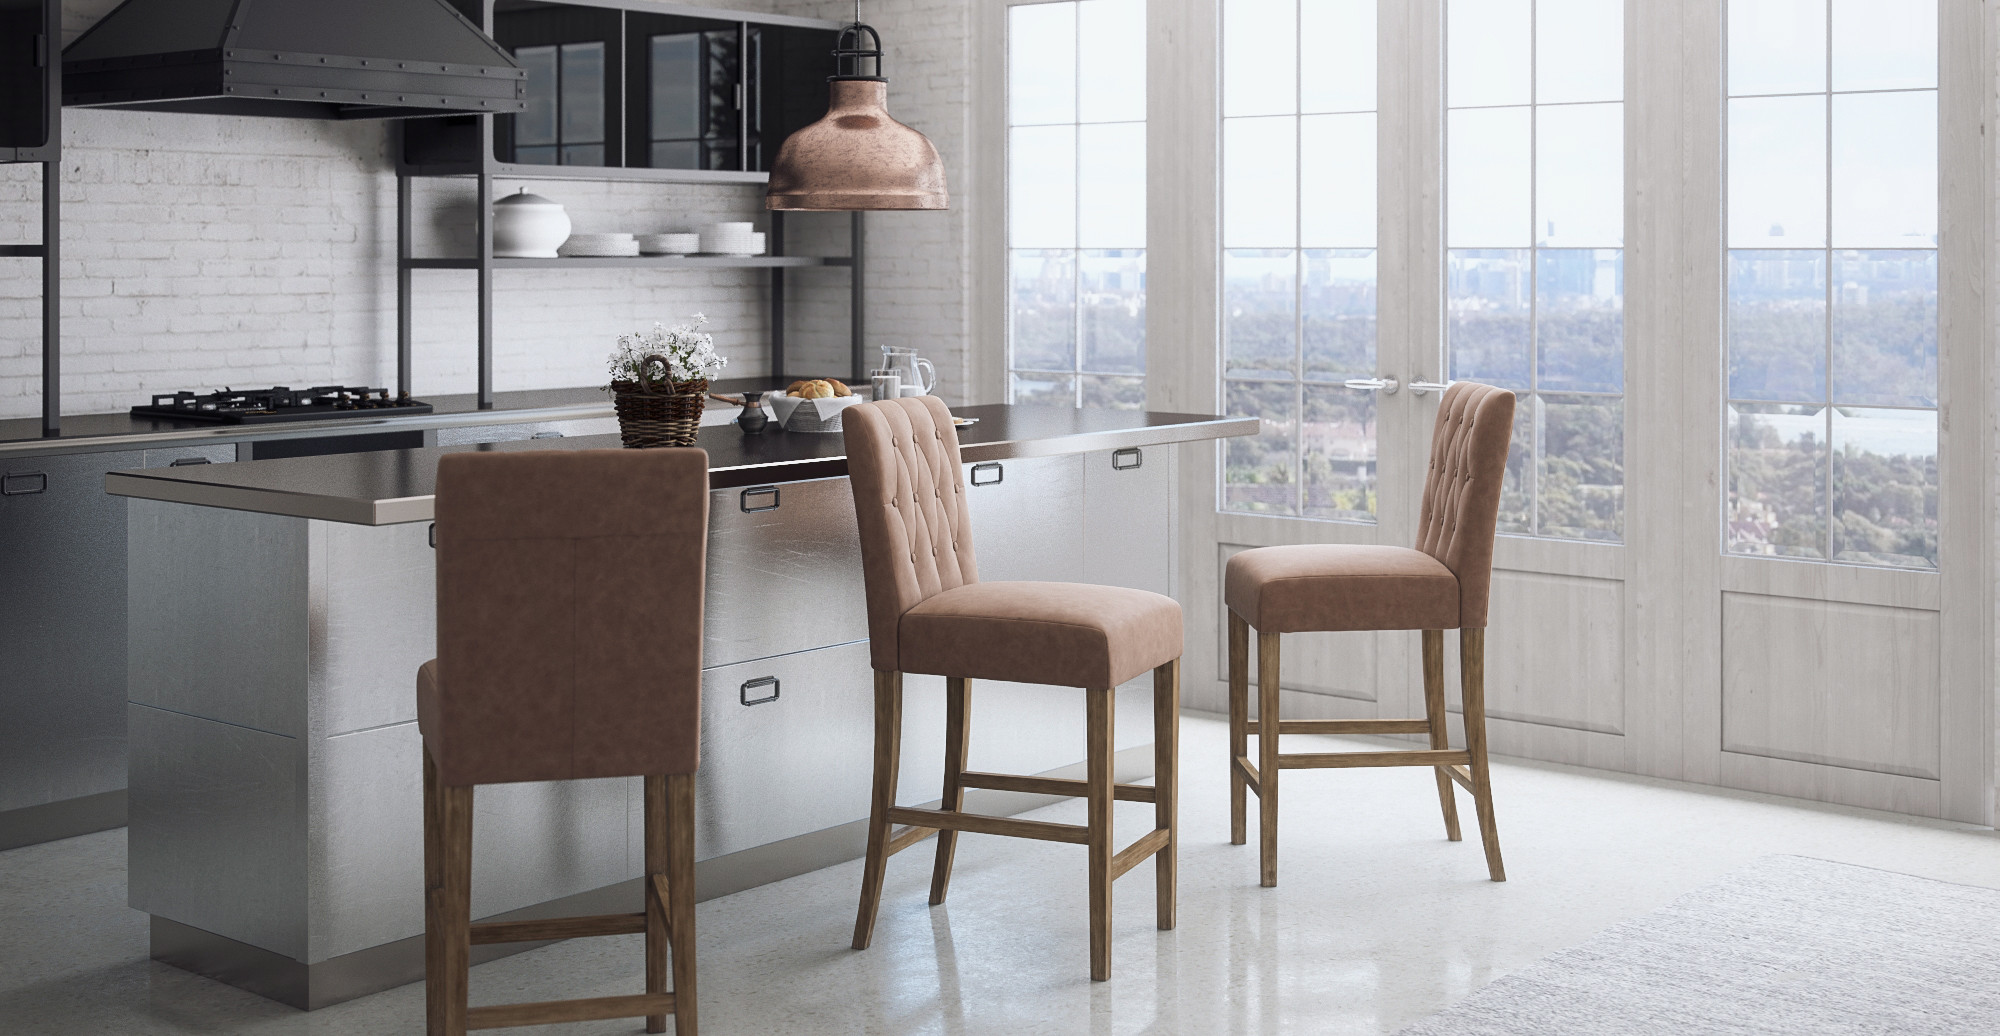 Brosa Espen® Leather Set of 2 Bar Stools styled in modern contemporary kitchen